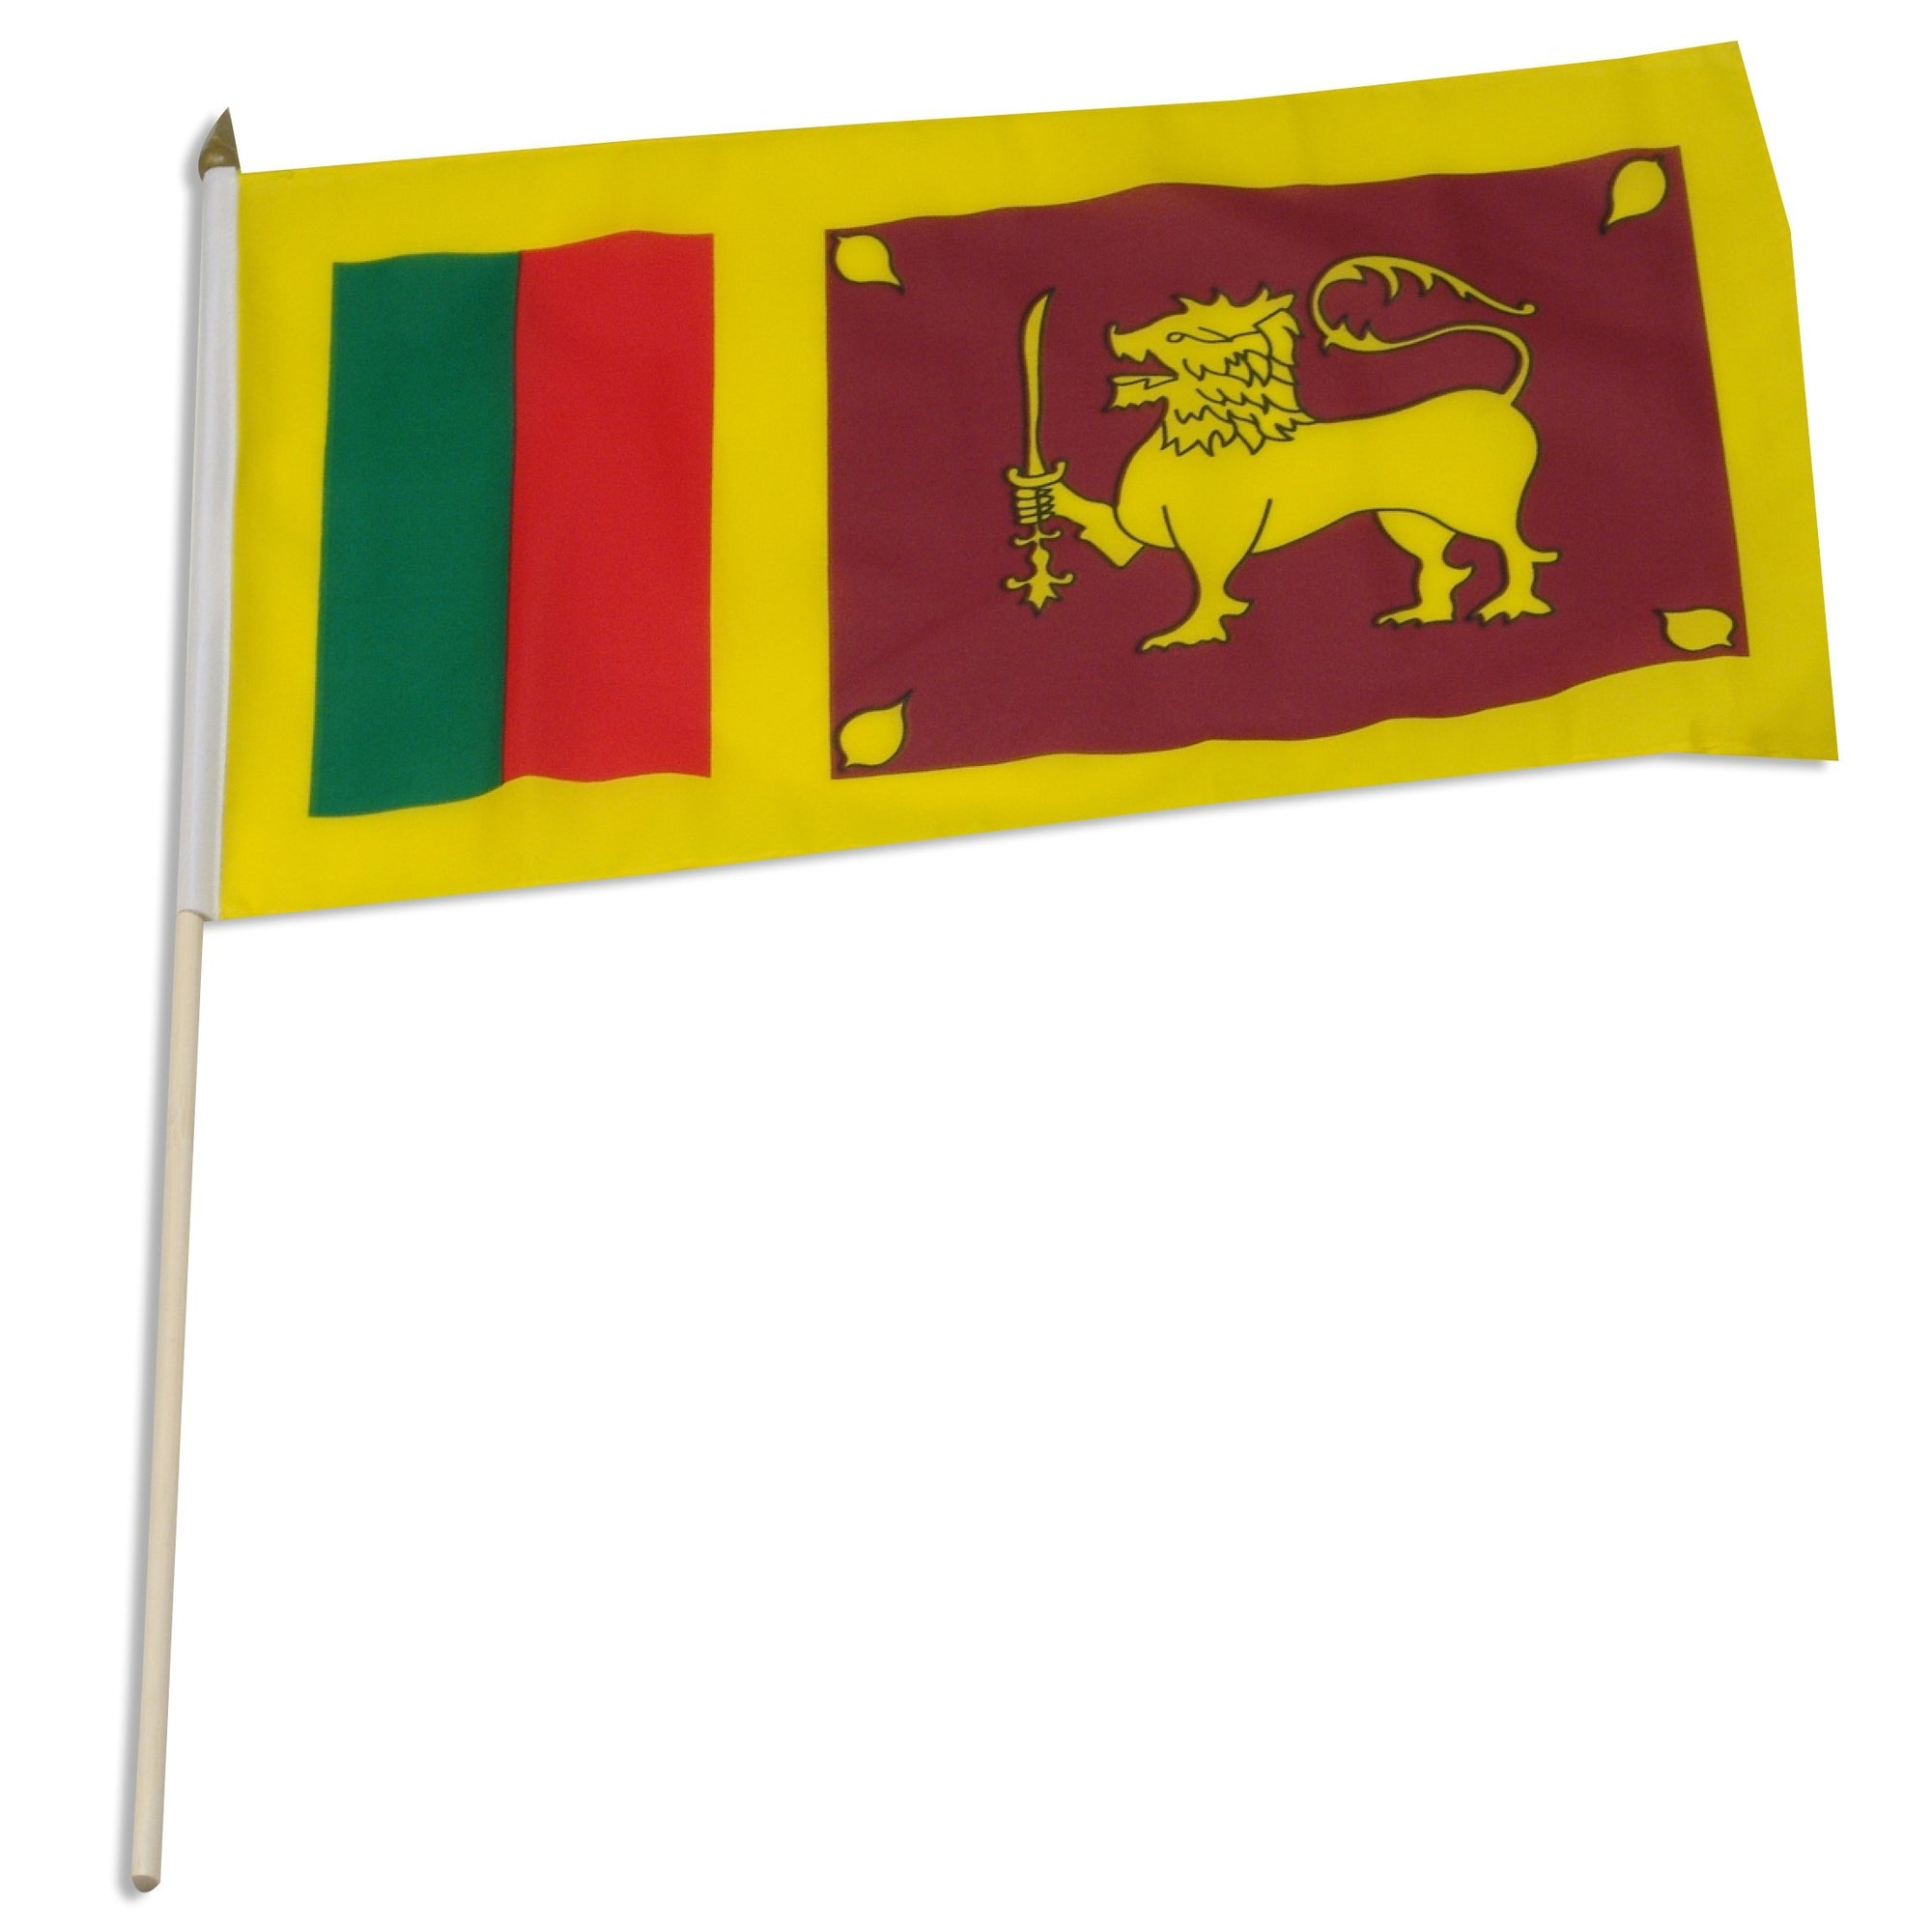 "Sri Lanka 12"" x 18"" Mounted Flag"